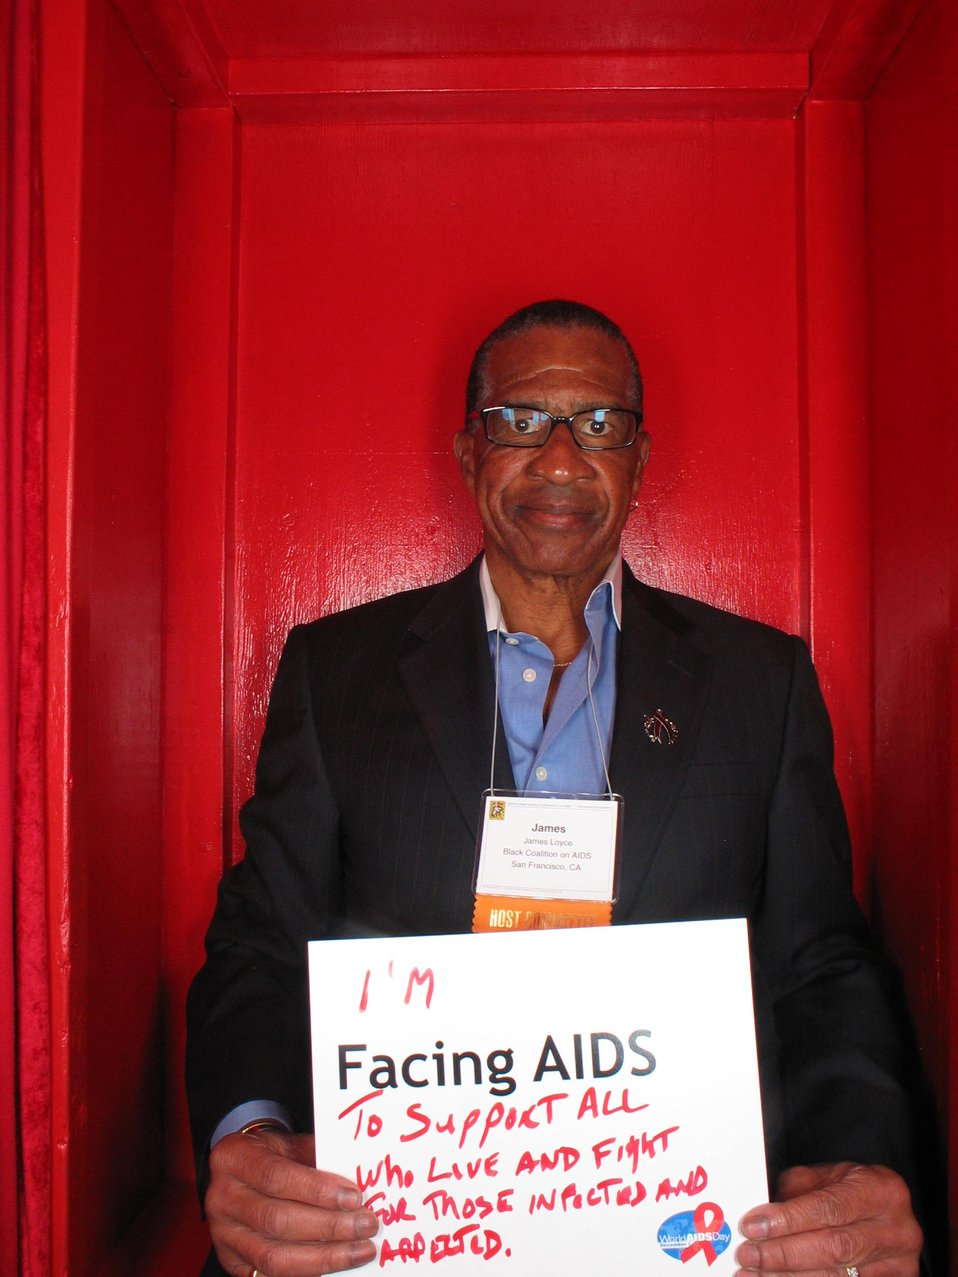 I'm Facing AIDS to support all who live and fight for those infected